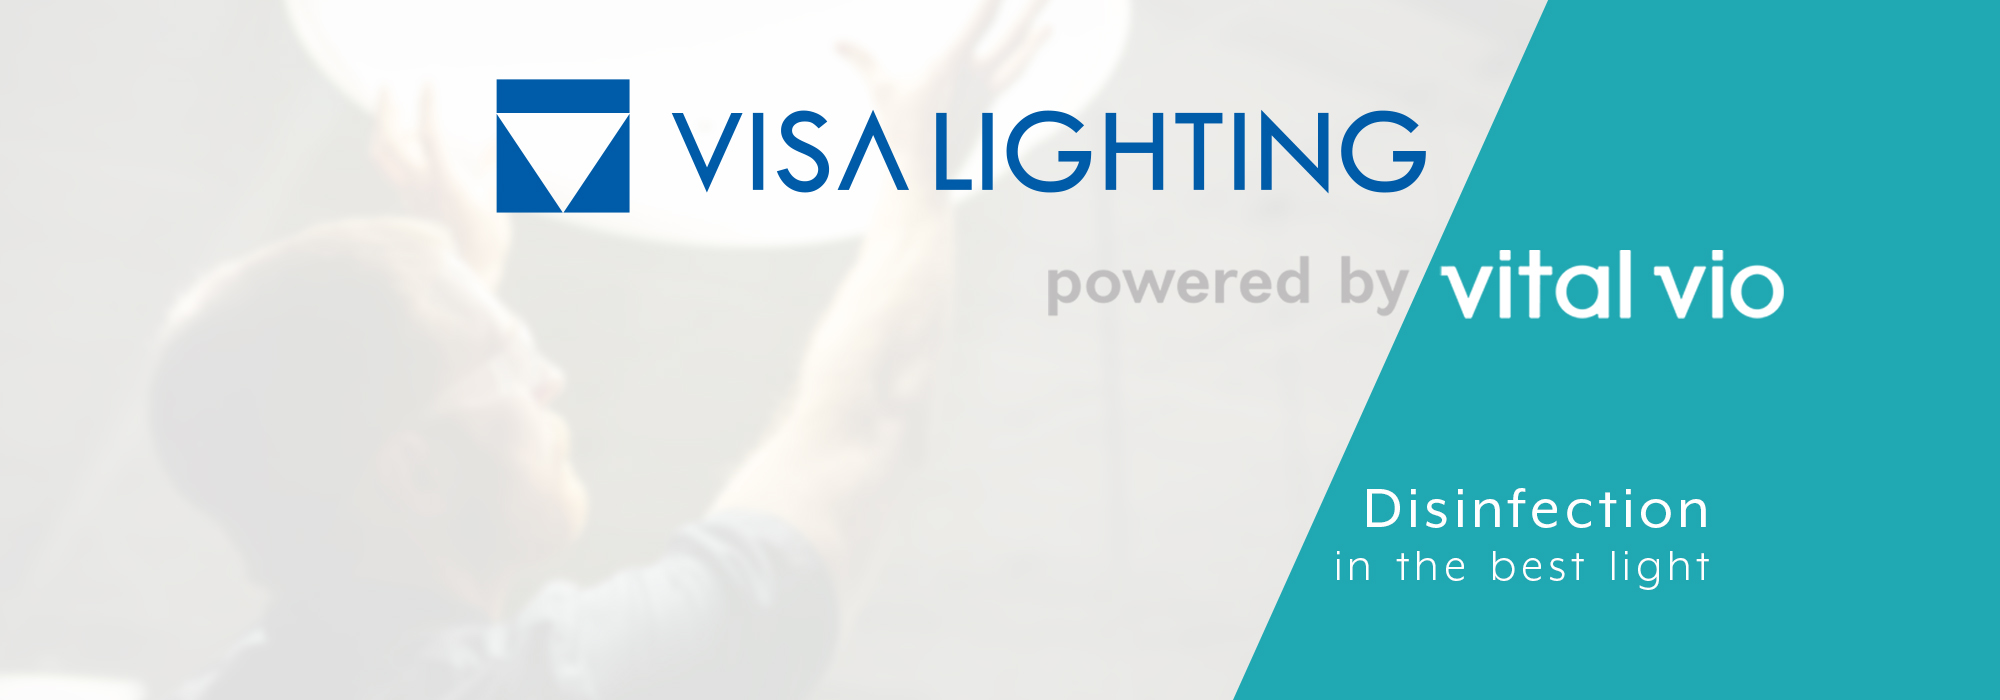 Visa Lighting and Vital Vio collaborate for disinfection in the best light